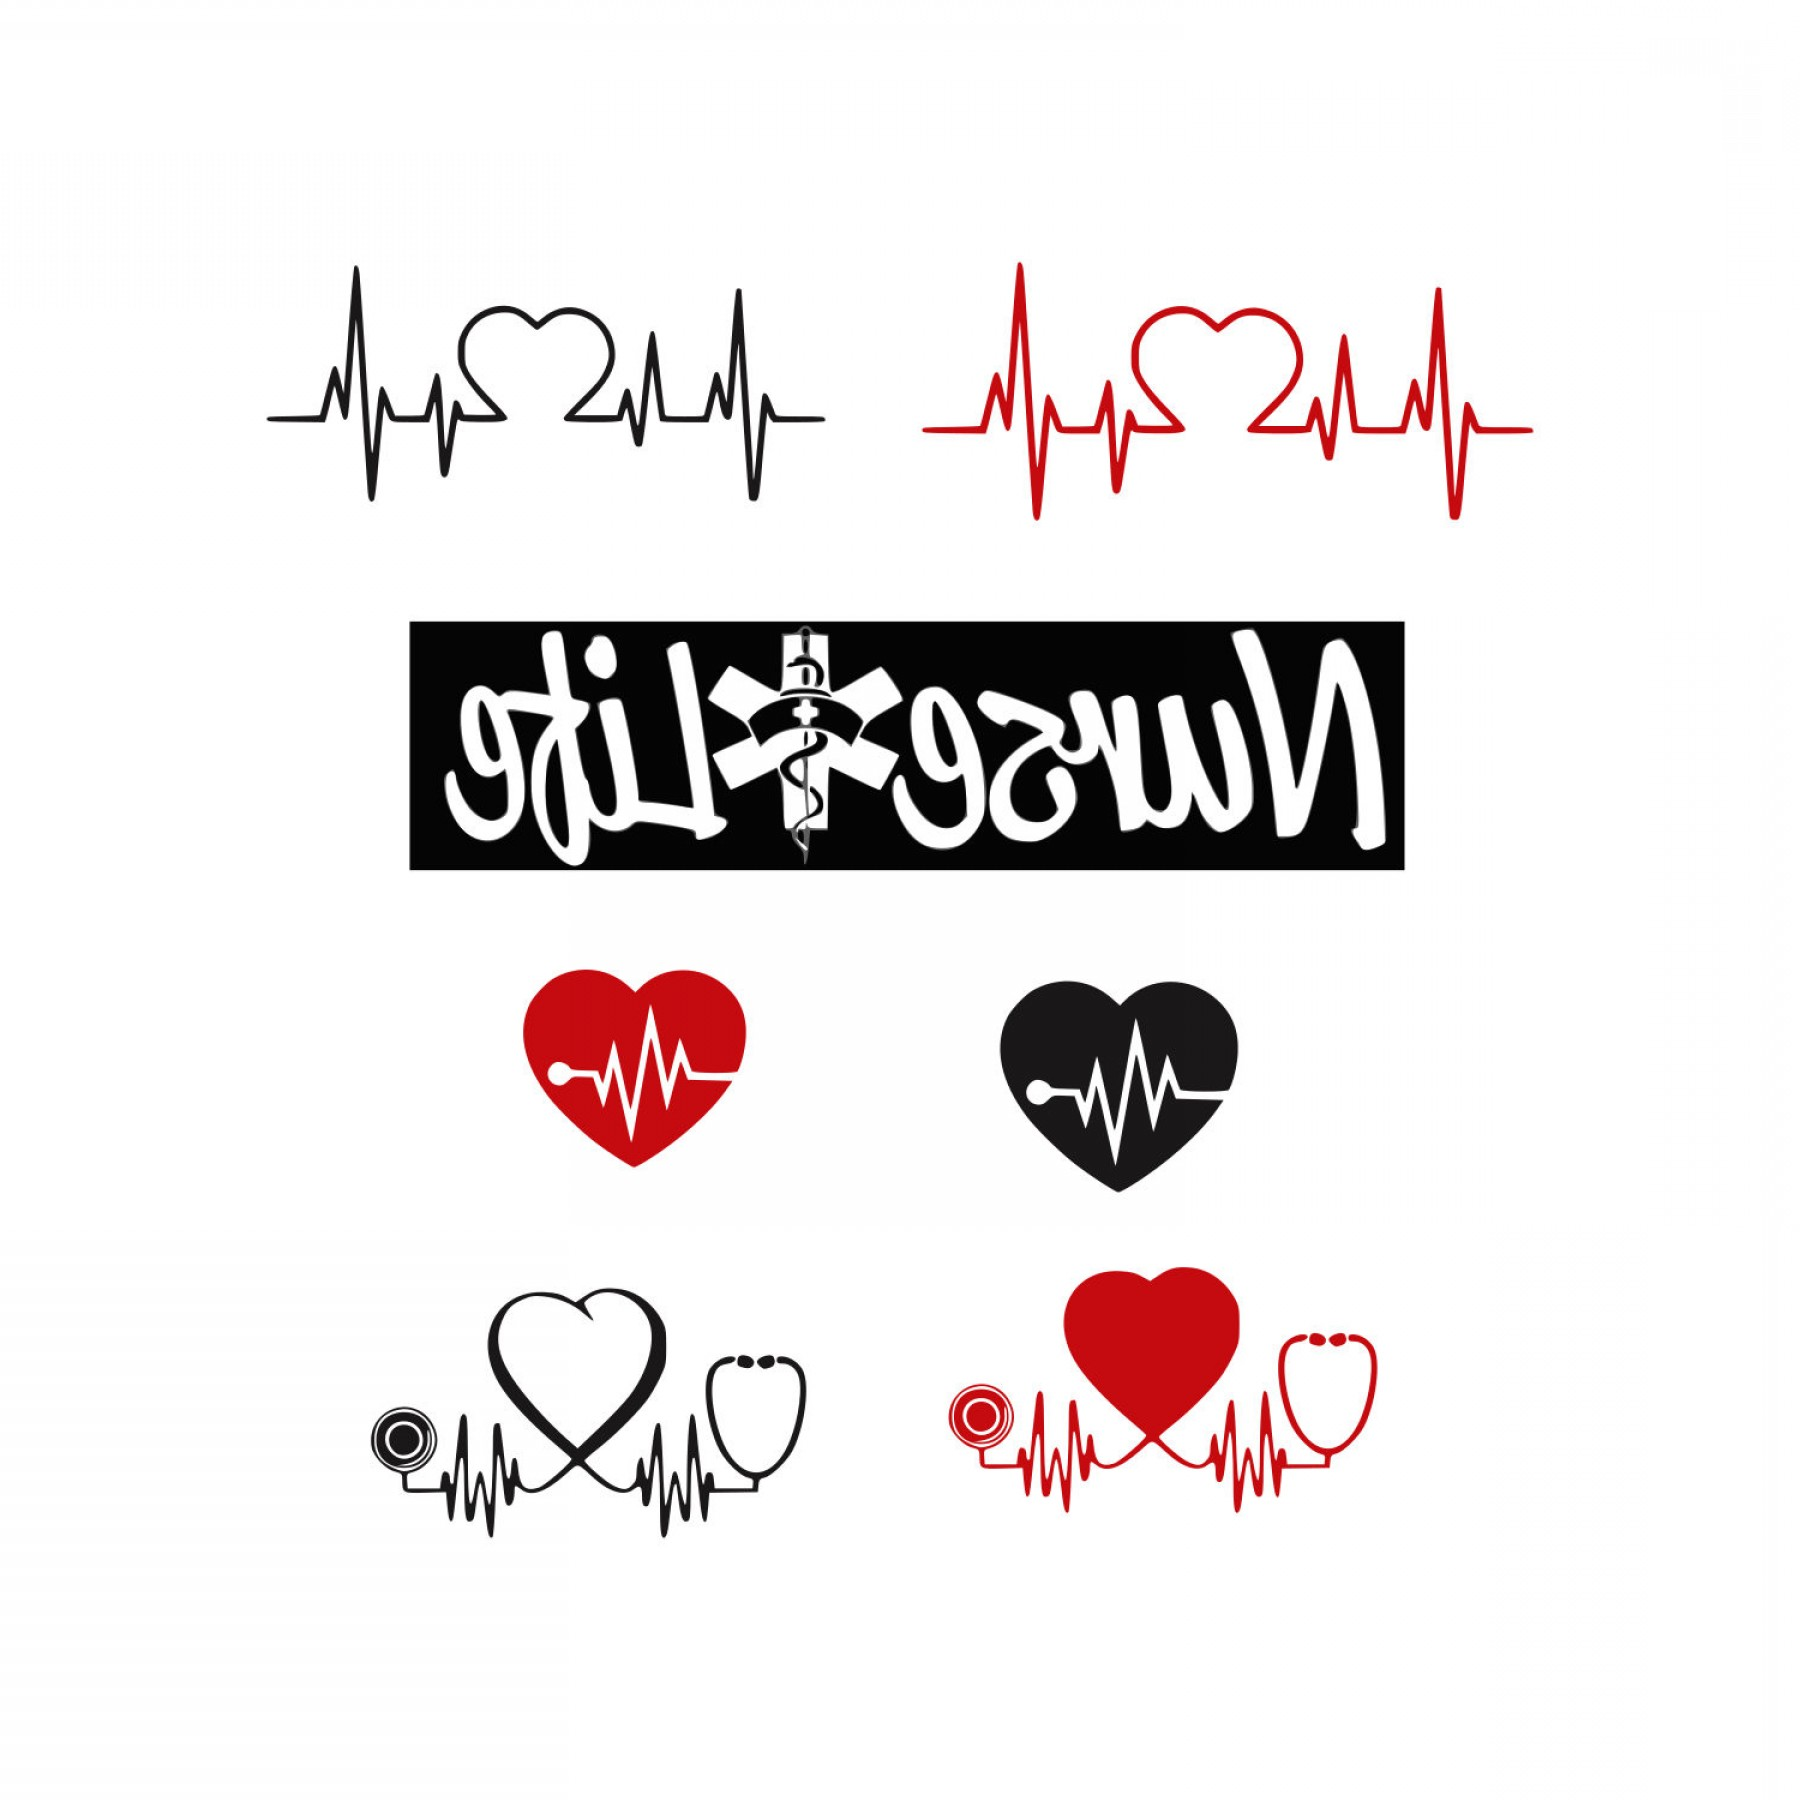 Nurse Vector Art SVG: Stethoscope Svg Nurse Life Svg Svg Files